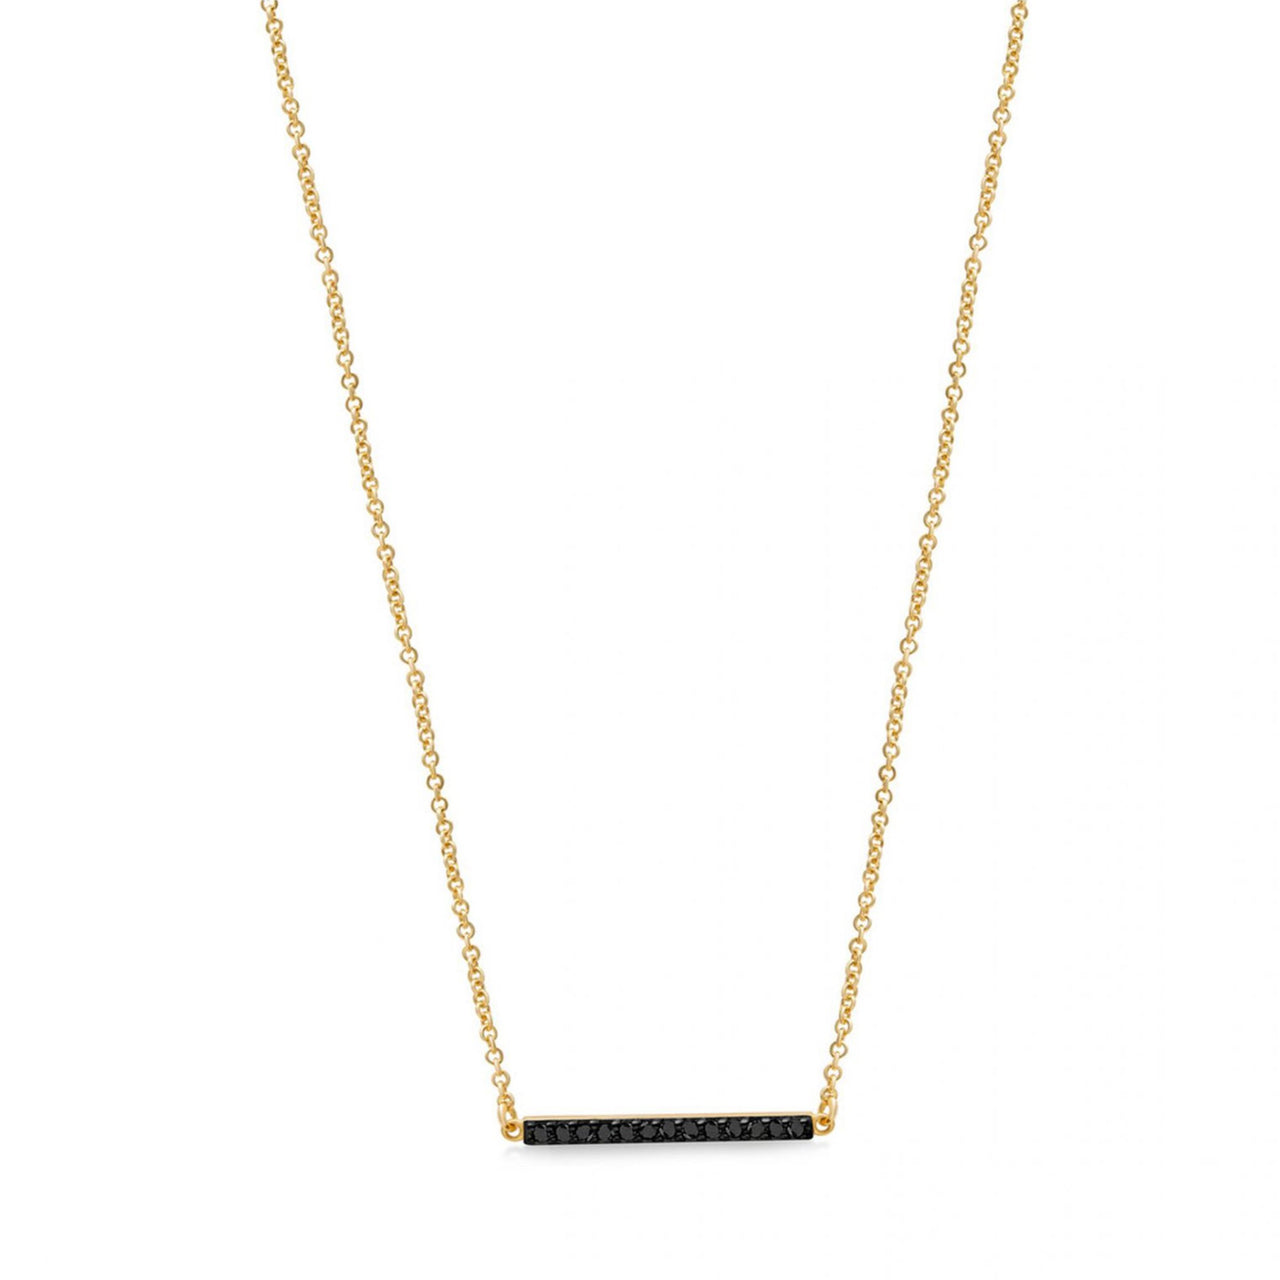 Line Necklace Yellow Gold with Black Pave